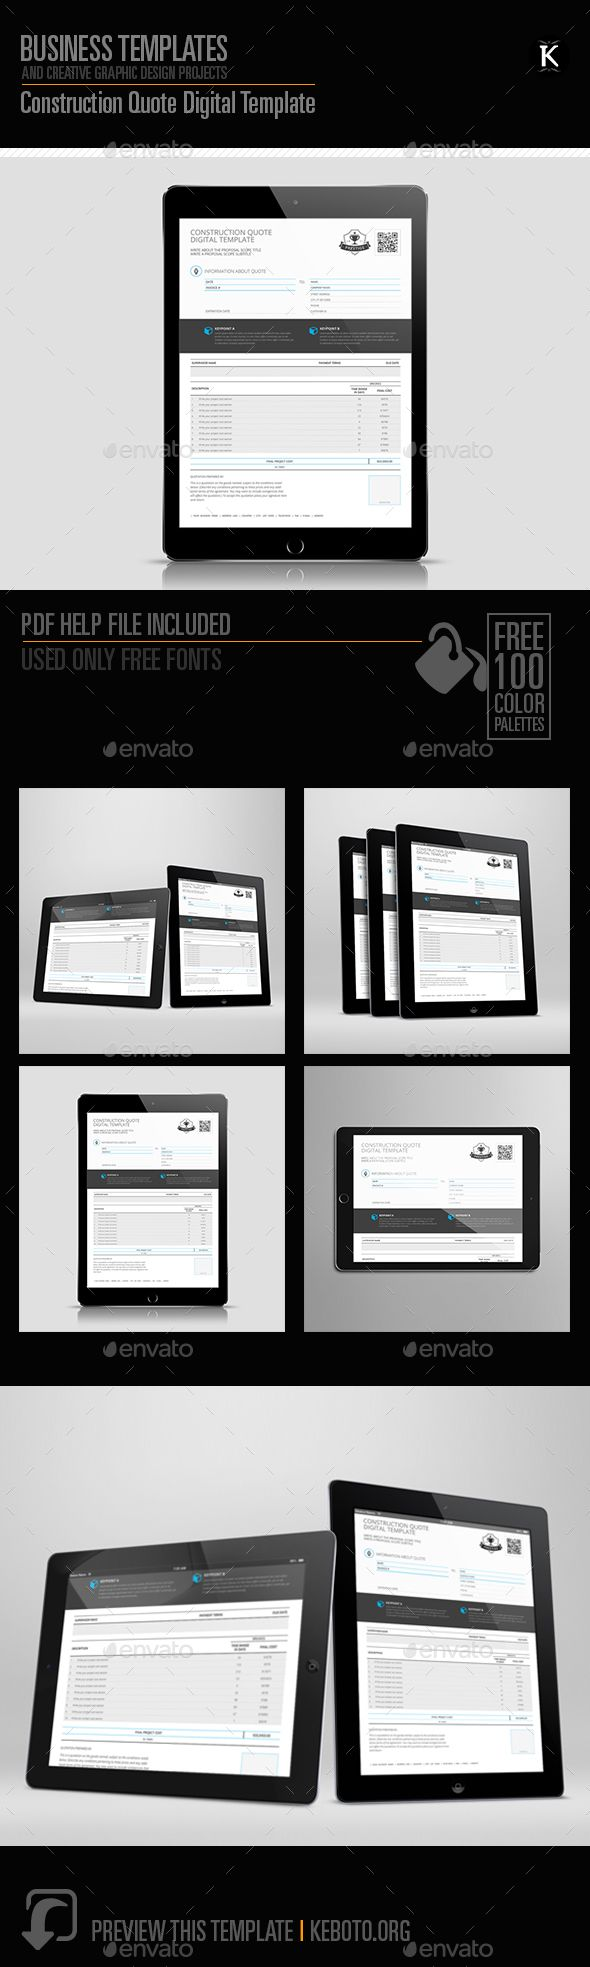 Construction Quote Digital Template